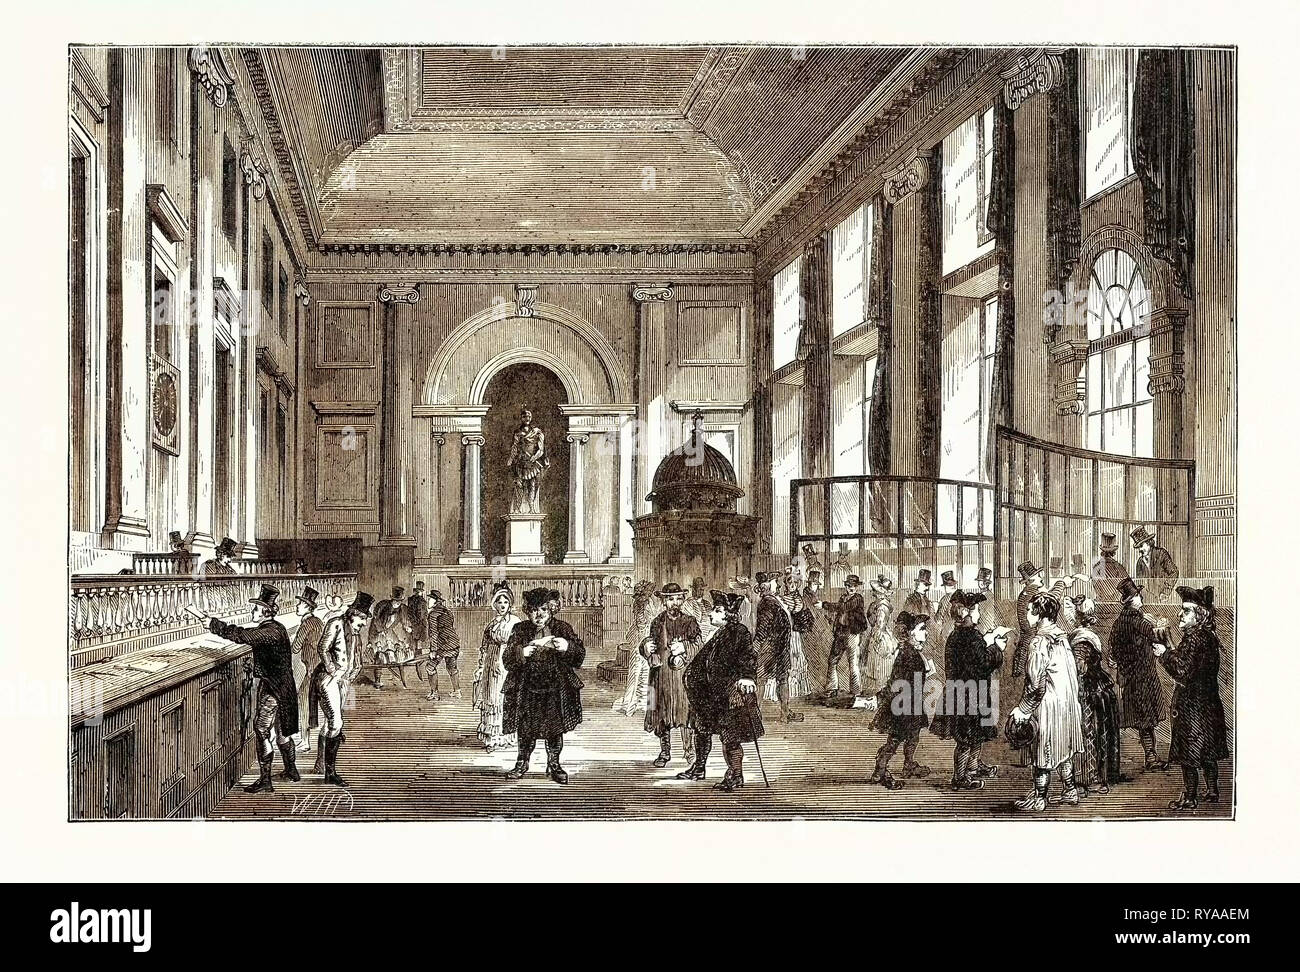 Dividend Day at the Bank 1770 London - Stock Image